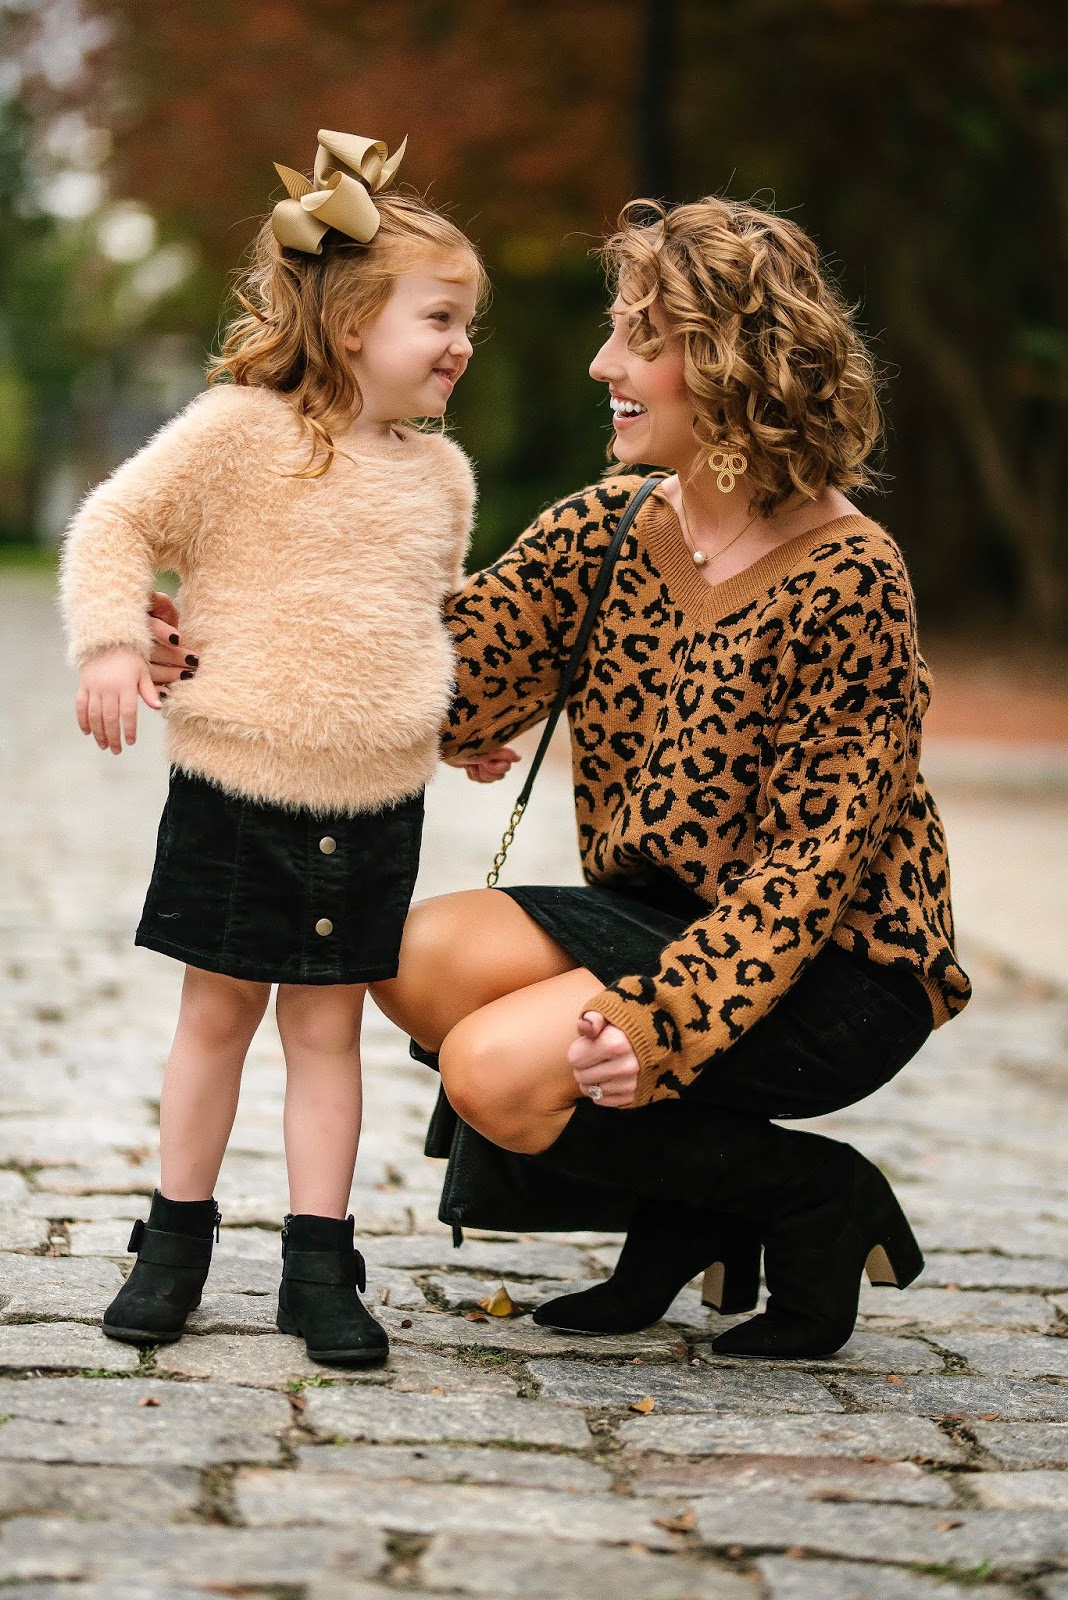 Mommy & Me Look: Twinning in Black Corduroy Skirts - Something Delightful Blog